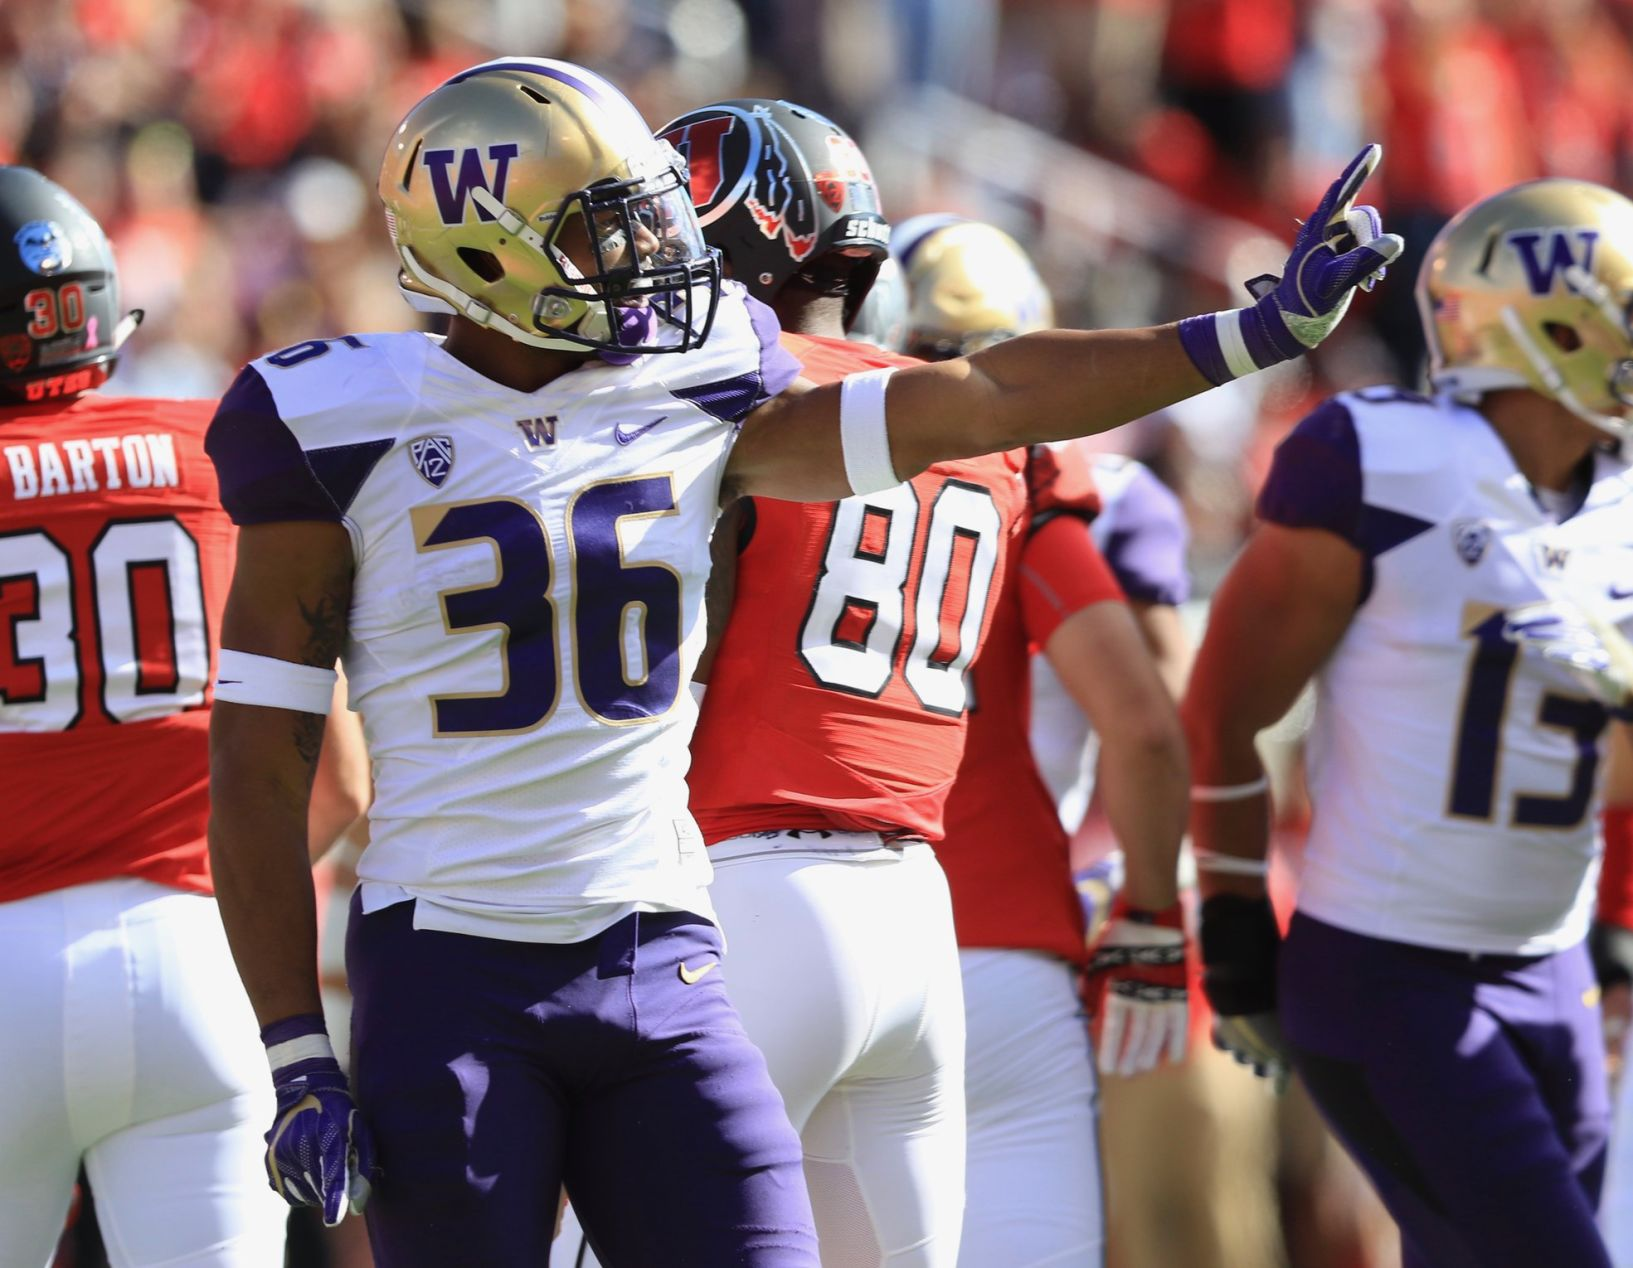 UW Huskies' Azeem Victor, Austin Joyner suspended for Friday's opener